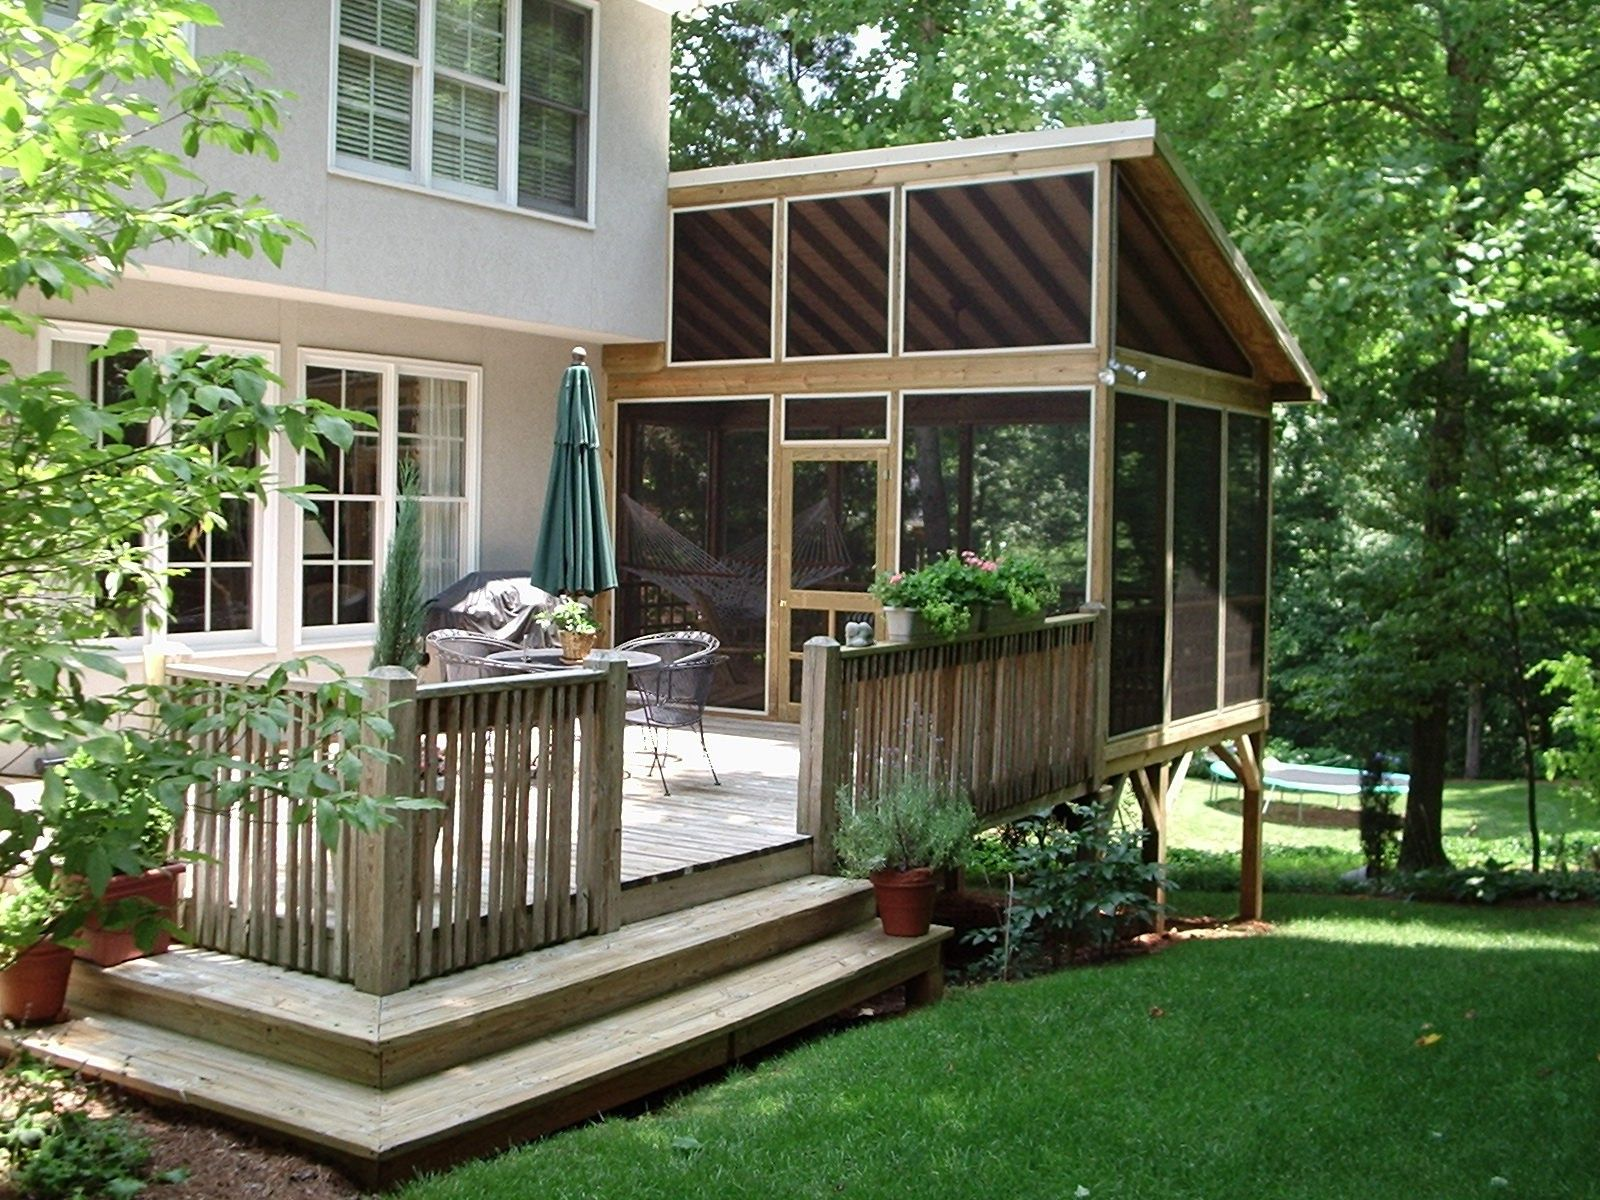 Chic Table and Chair also Umbrella For Best Backyard Deck